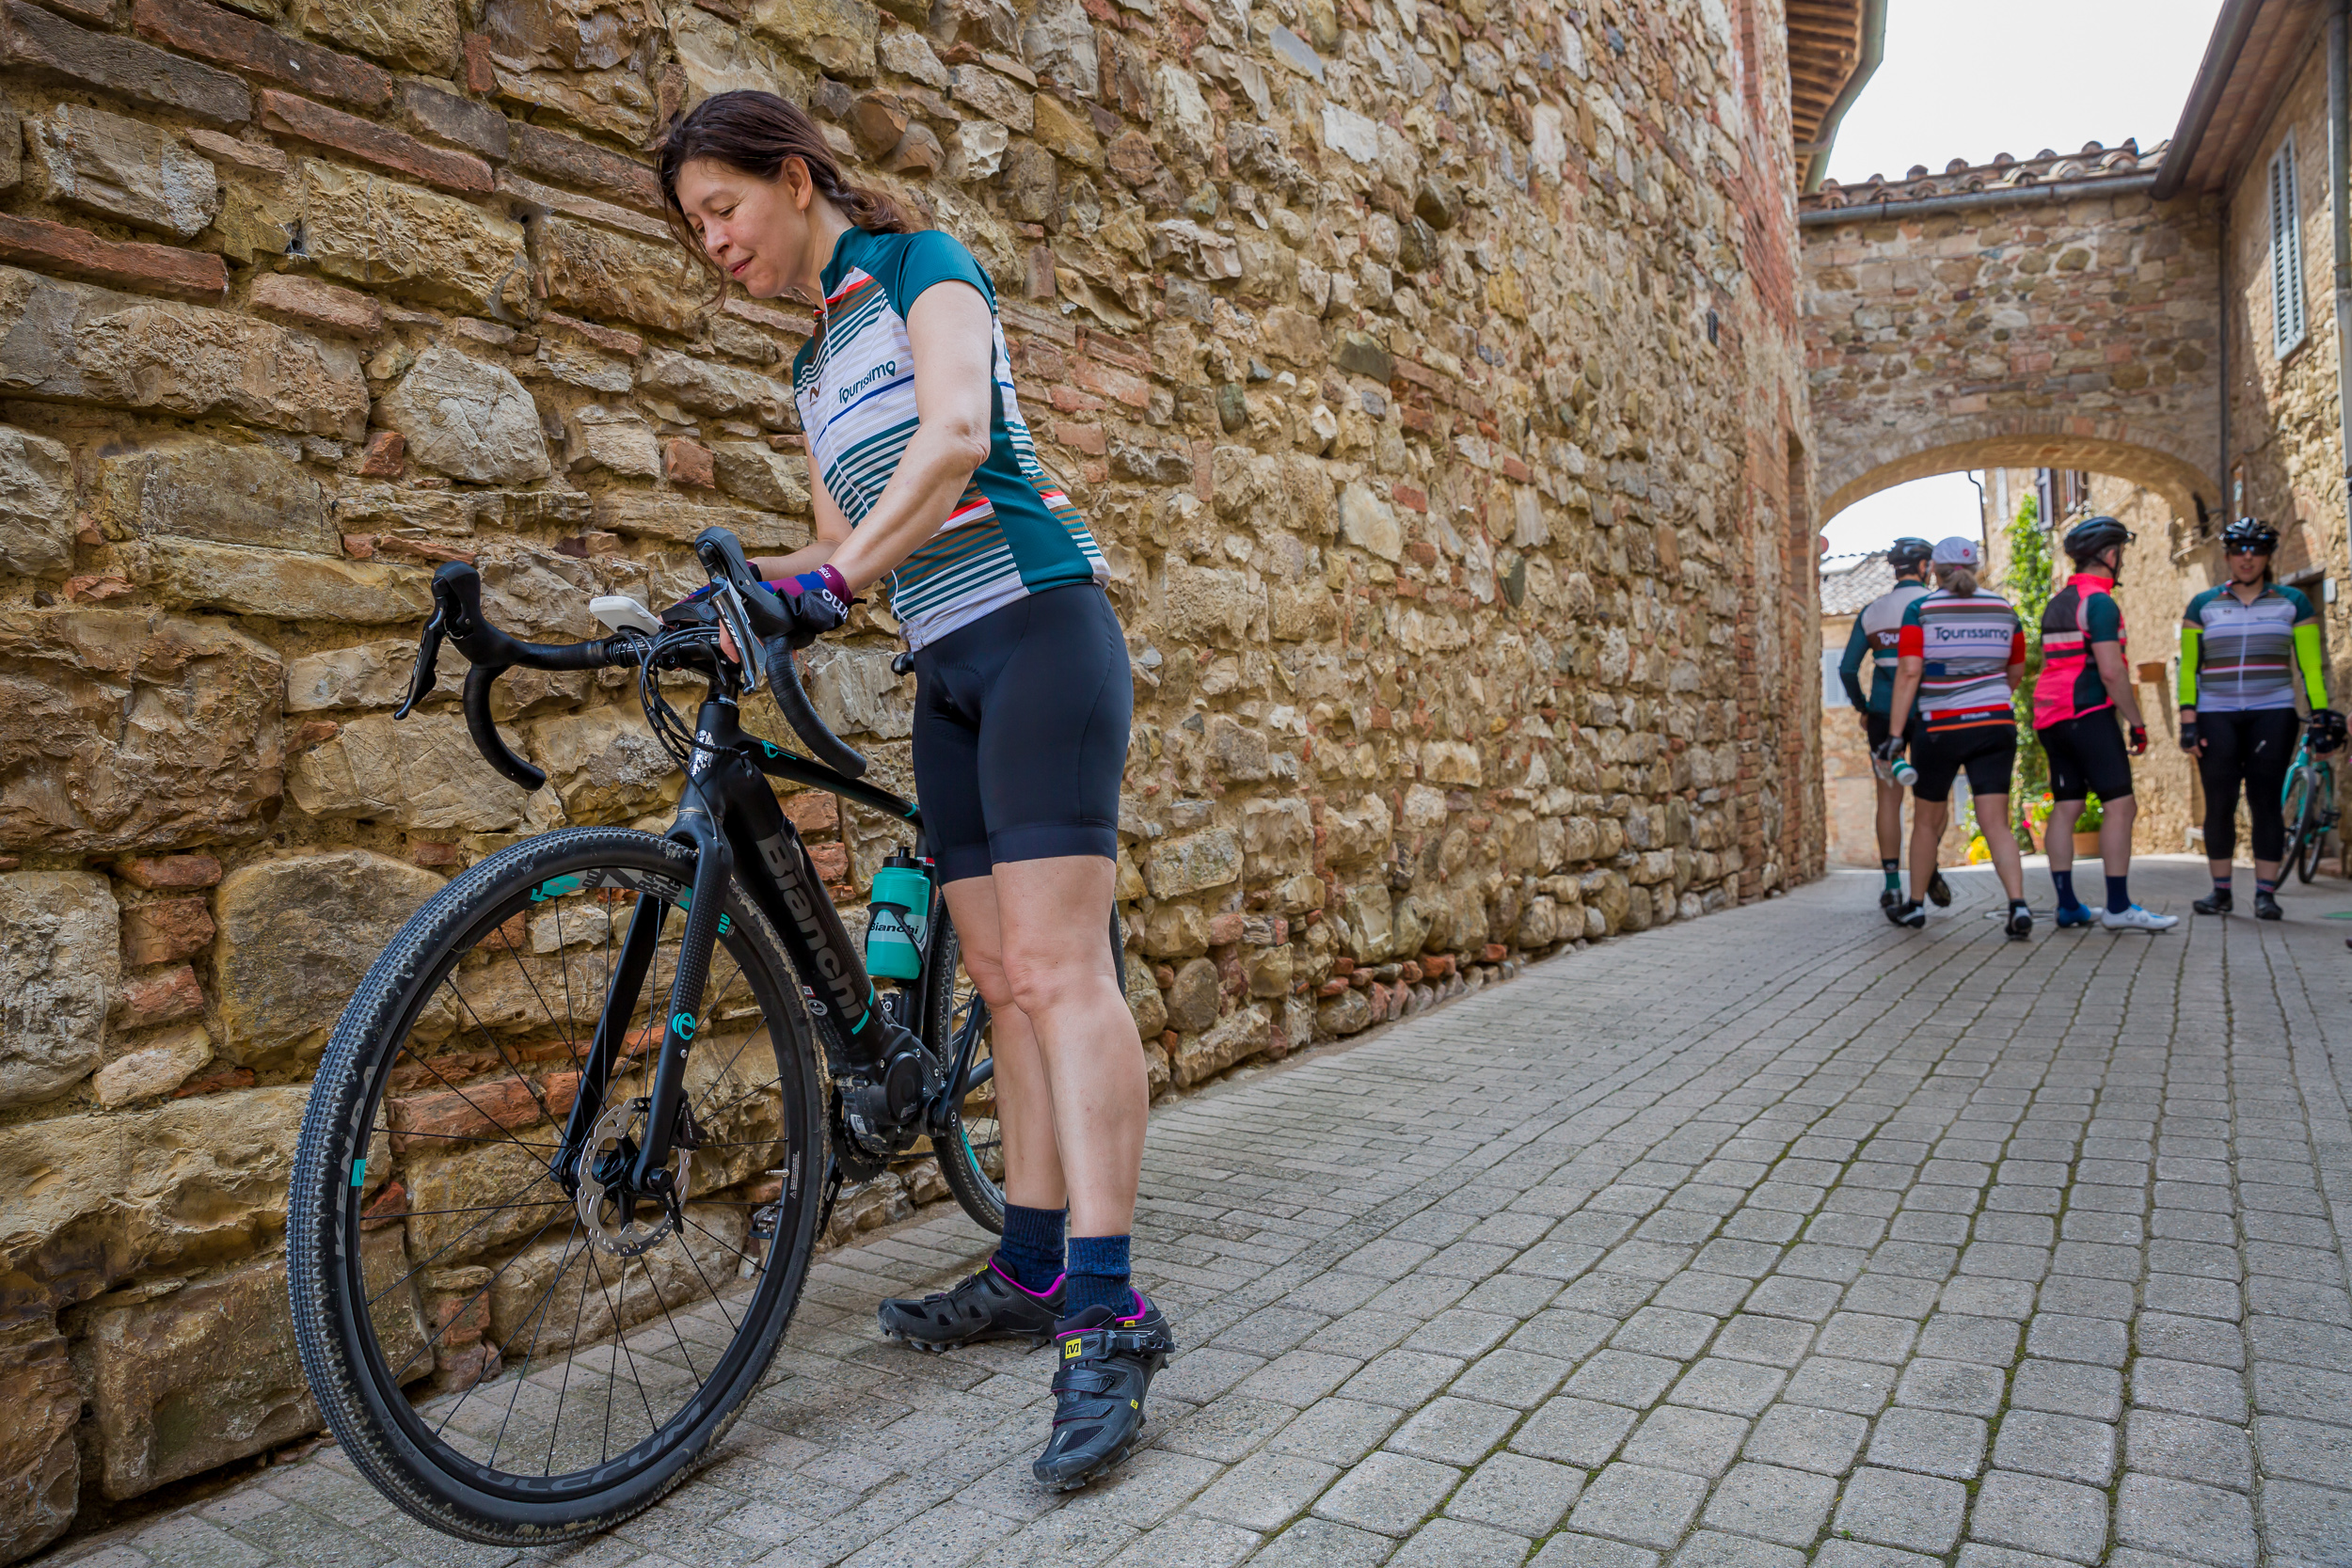 ride an ebike on a cycling tour of italy